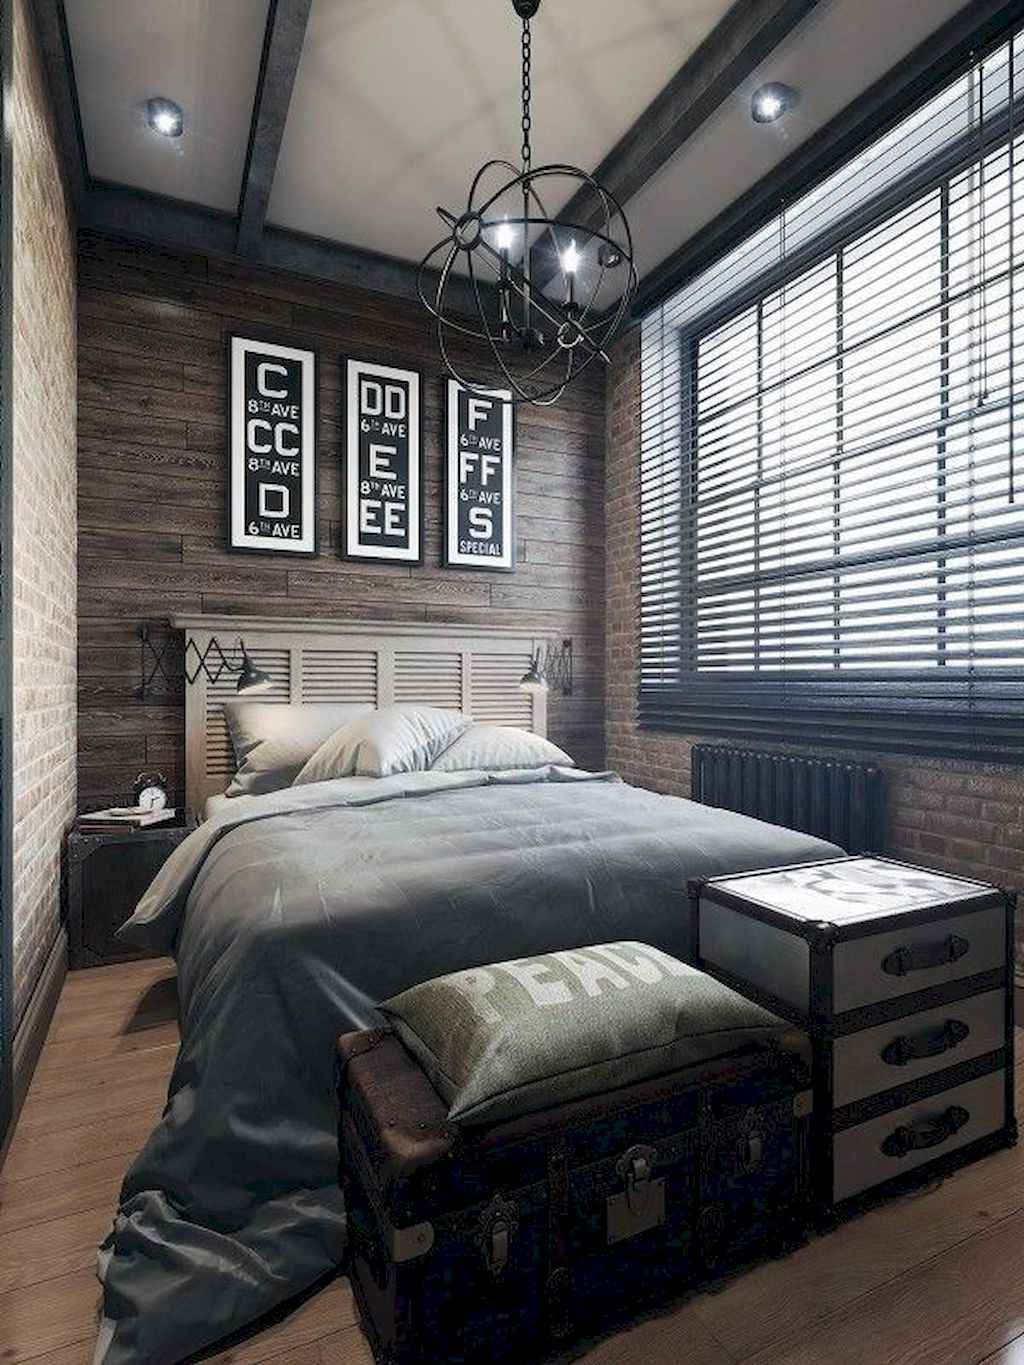 Awesome bedroom decoration ideas (18)